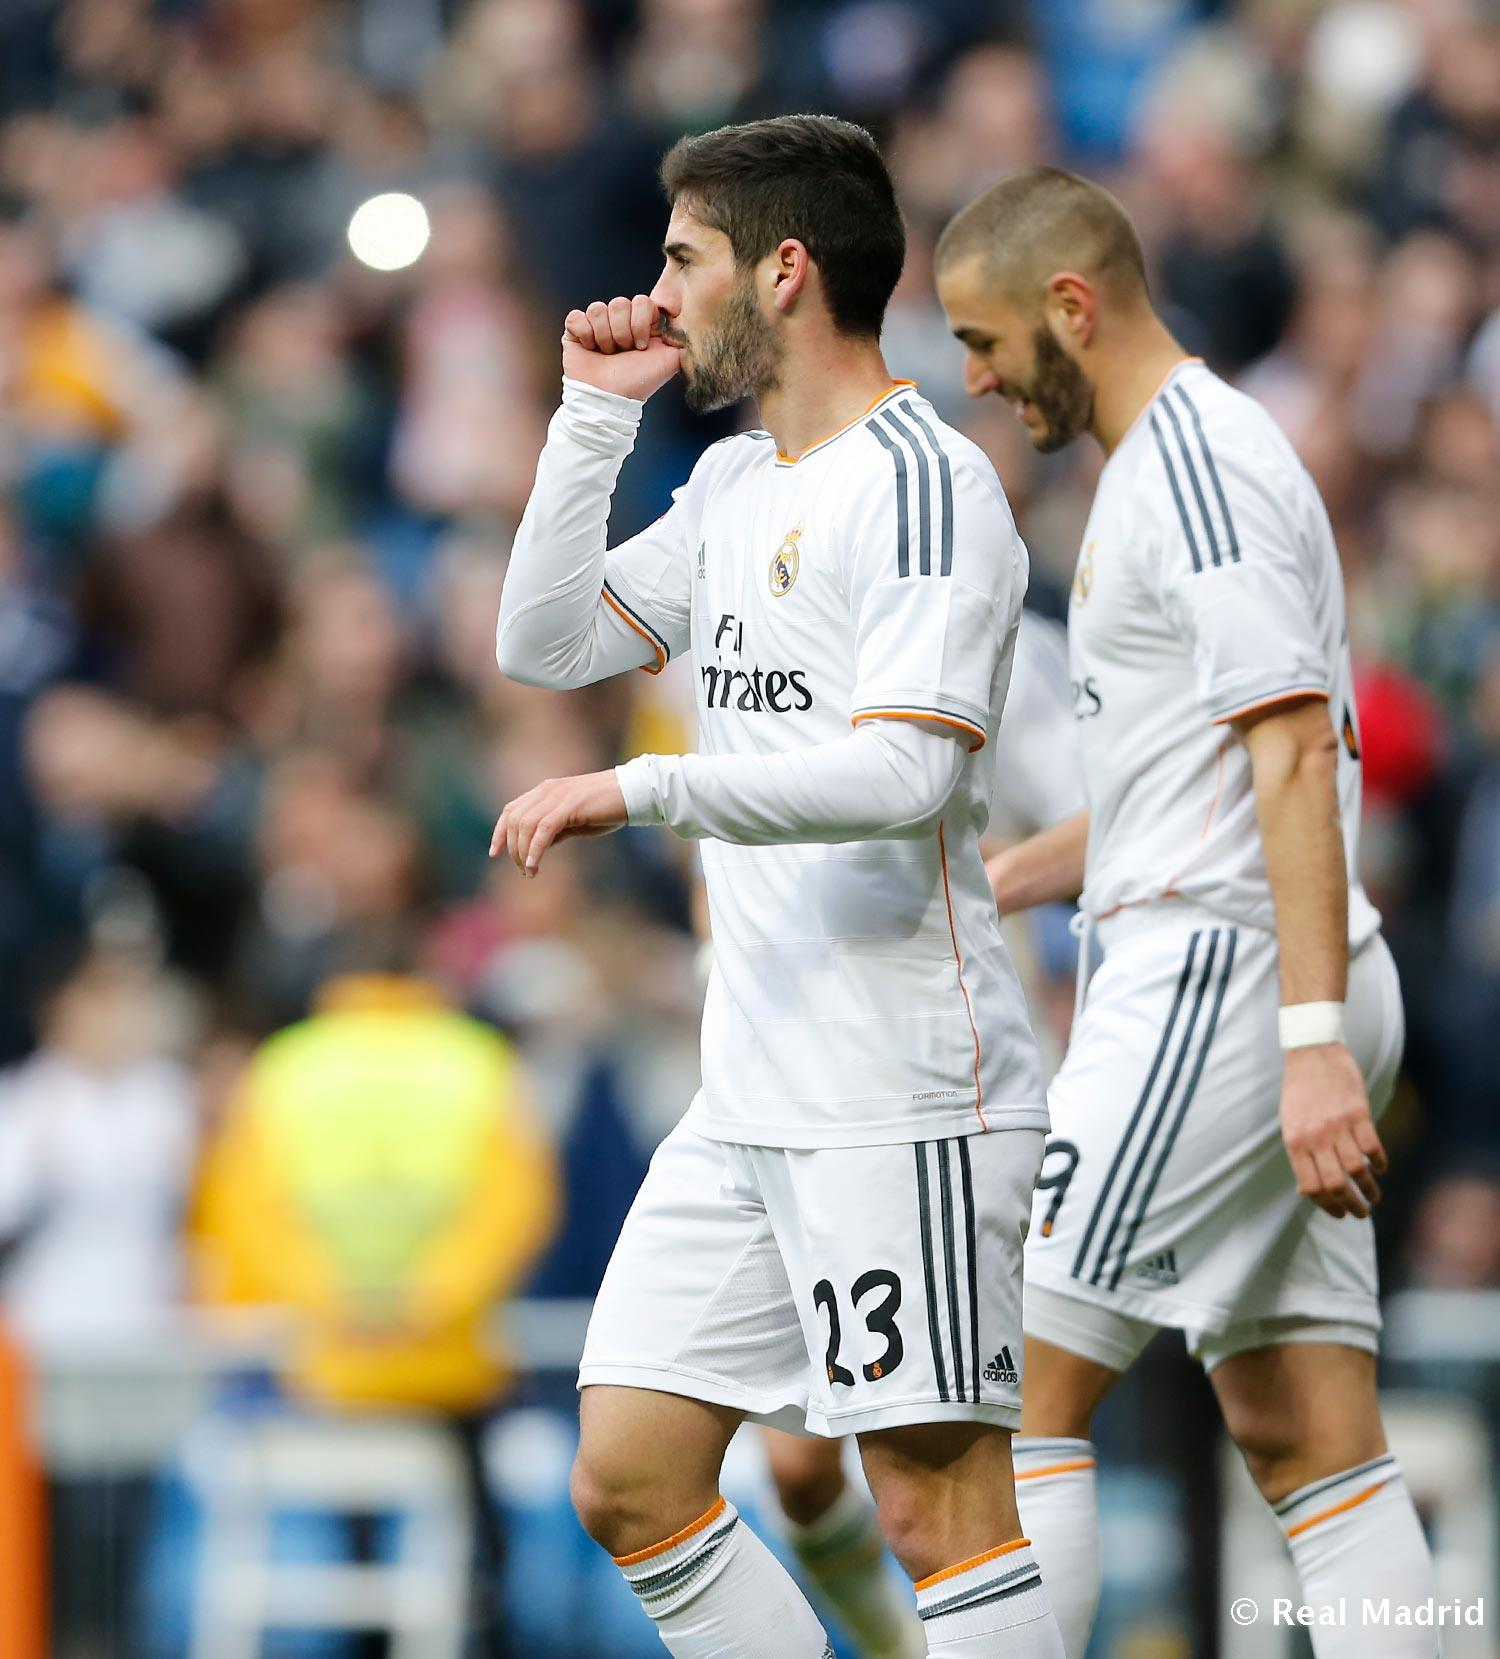 Real Madrid - Real Madrid- Elche - 22-02-2014